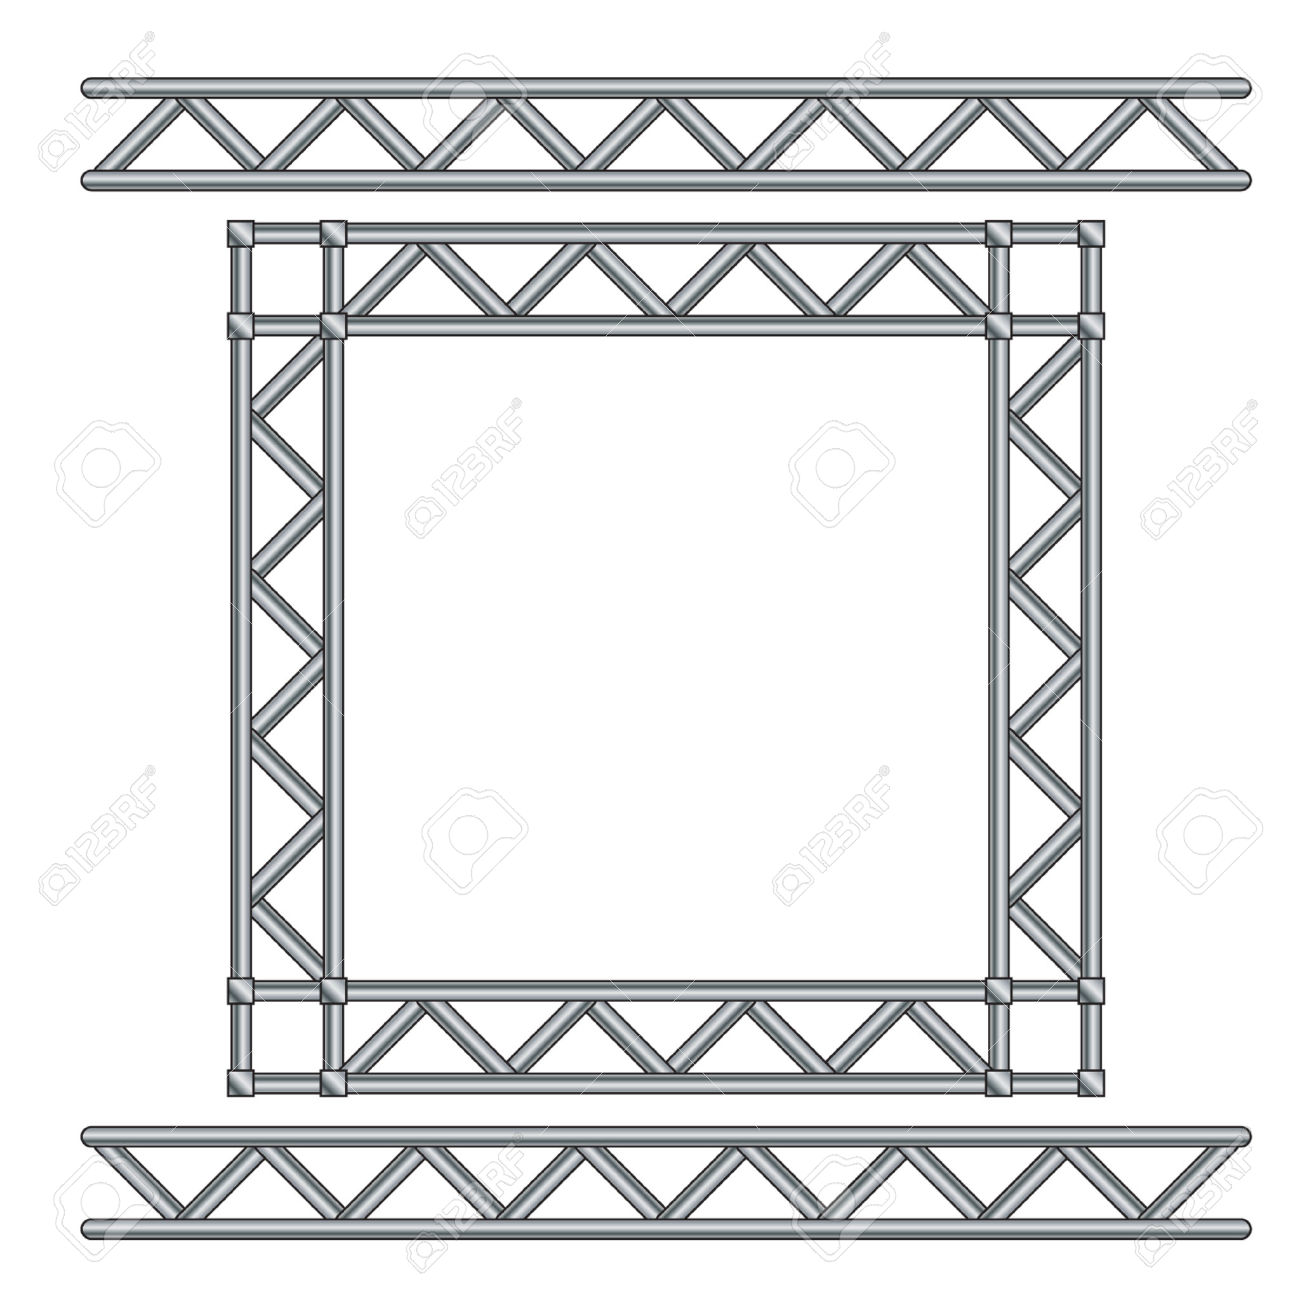 Metal Truss Royalty Free Cliparts, Vectors, And Stock Illustration.